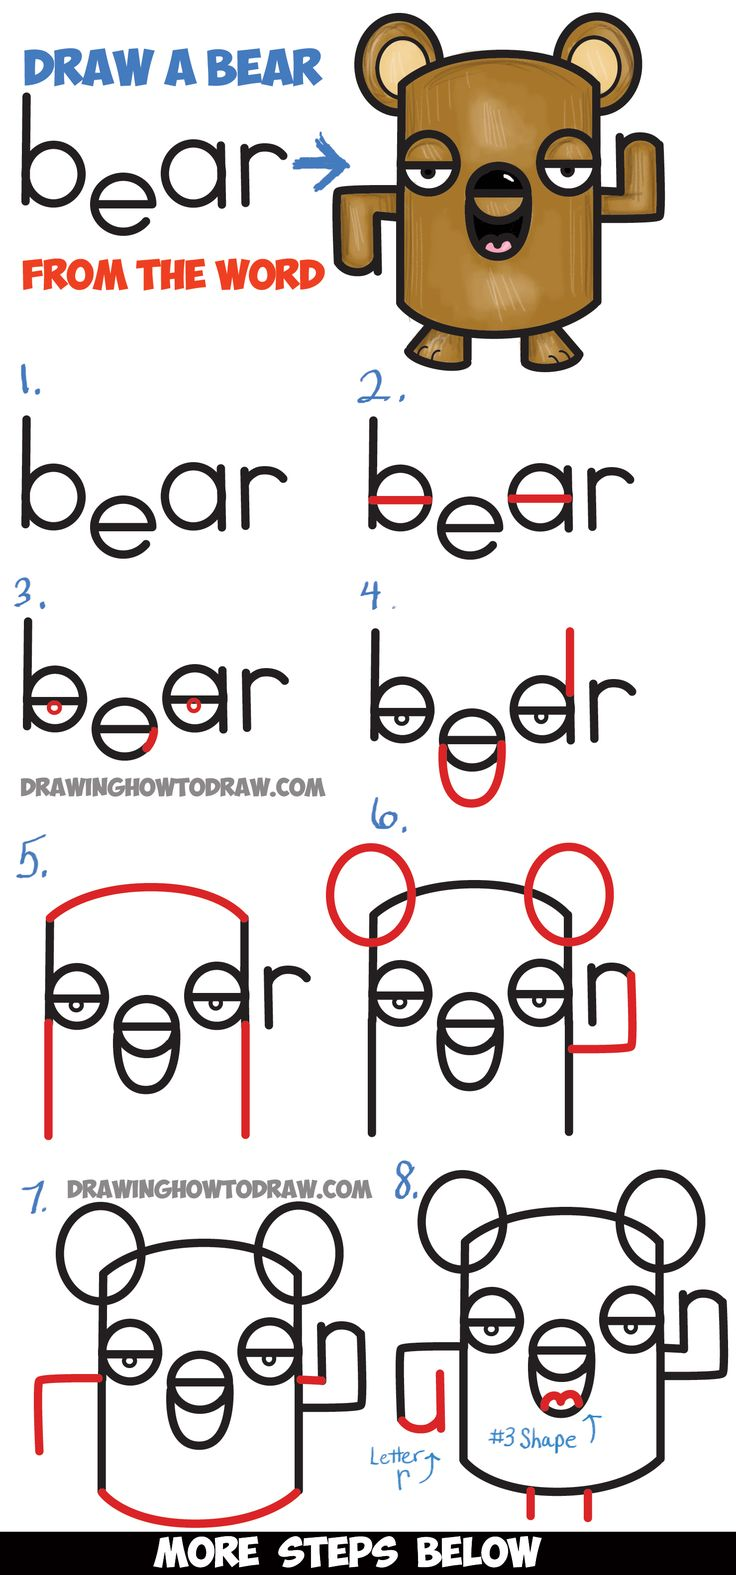 Learn How To Draw A Cartoon Bear From The Word Bear  Easy Step By Step